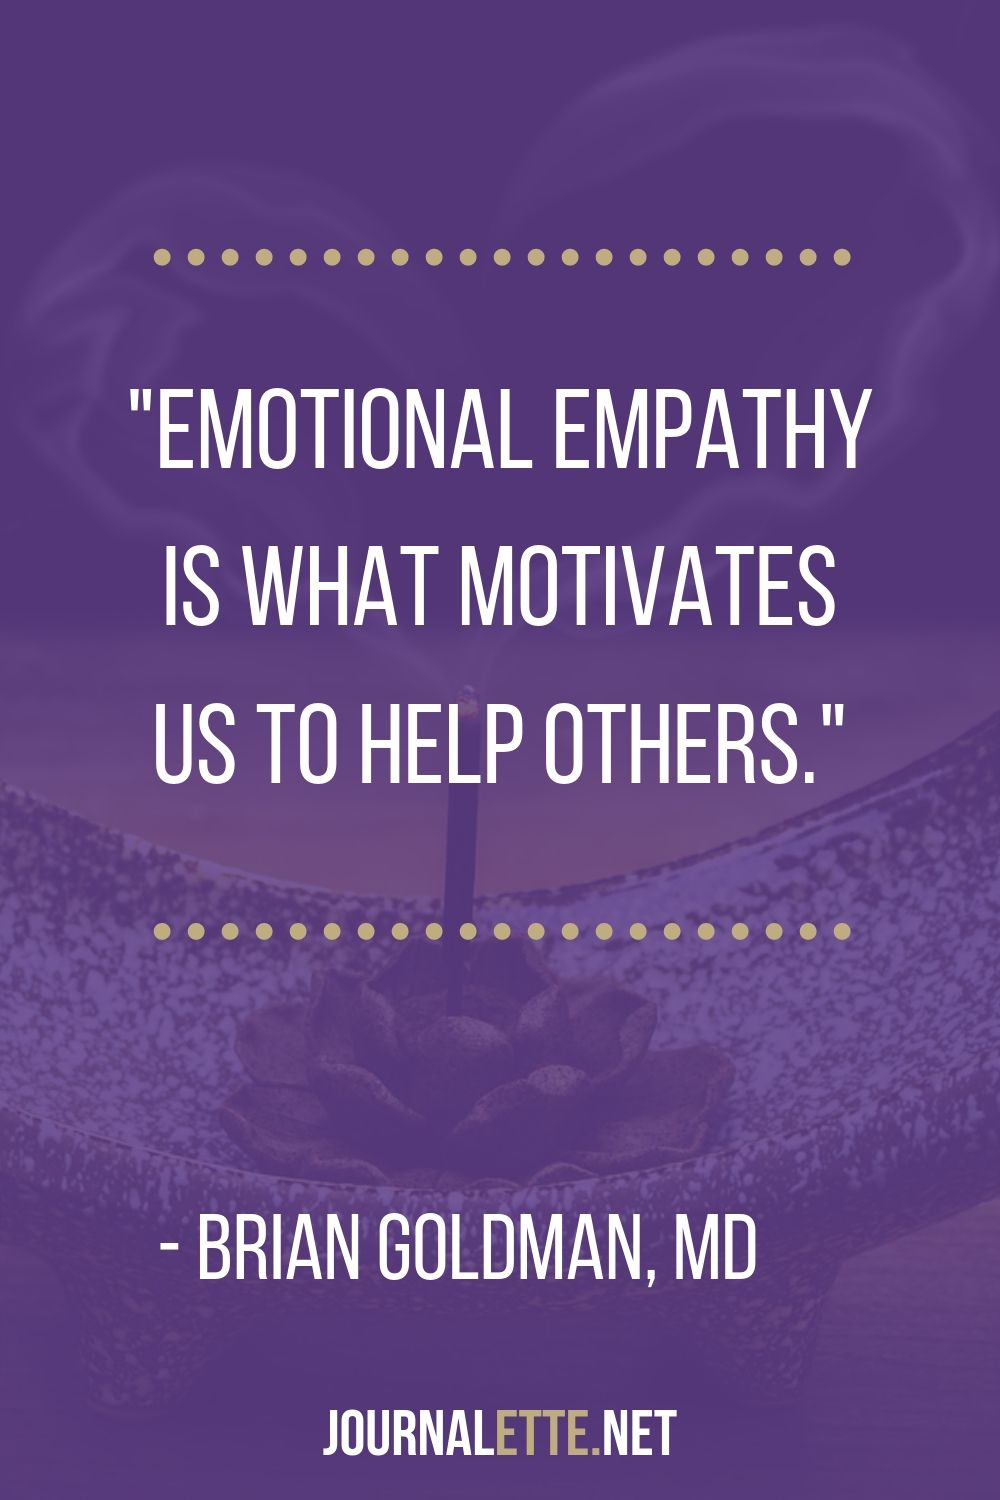 empath quote by brian goldman